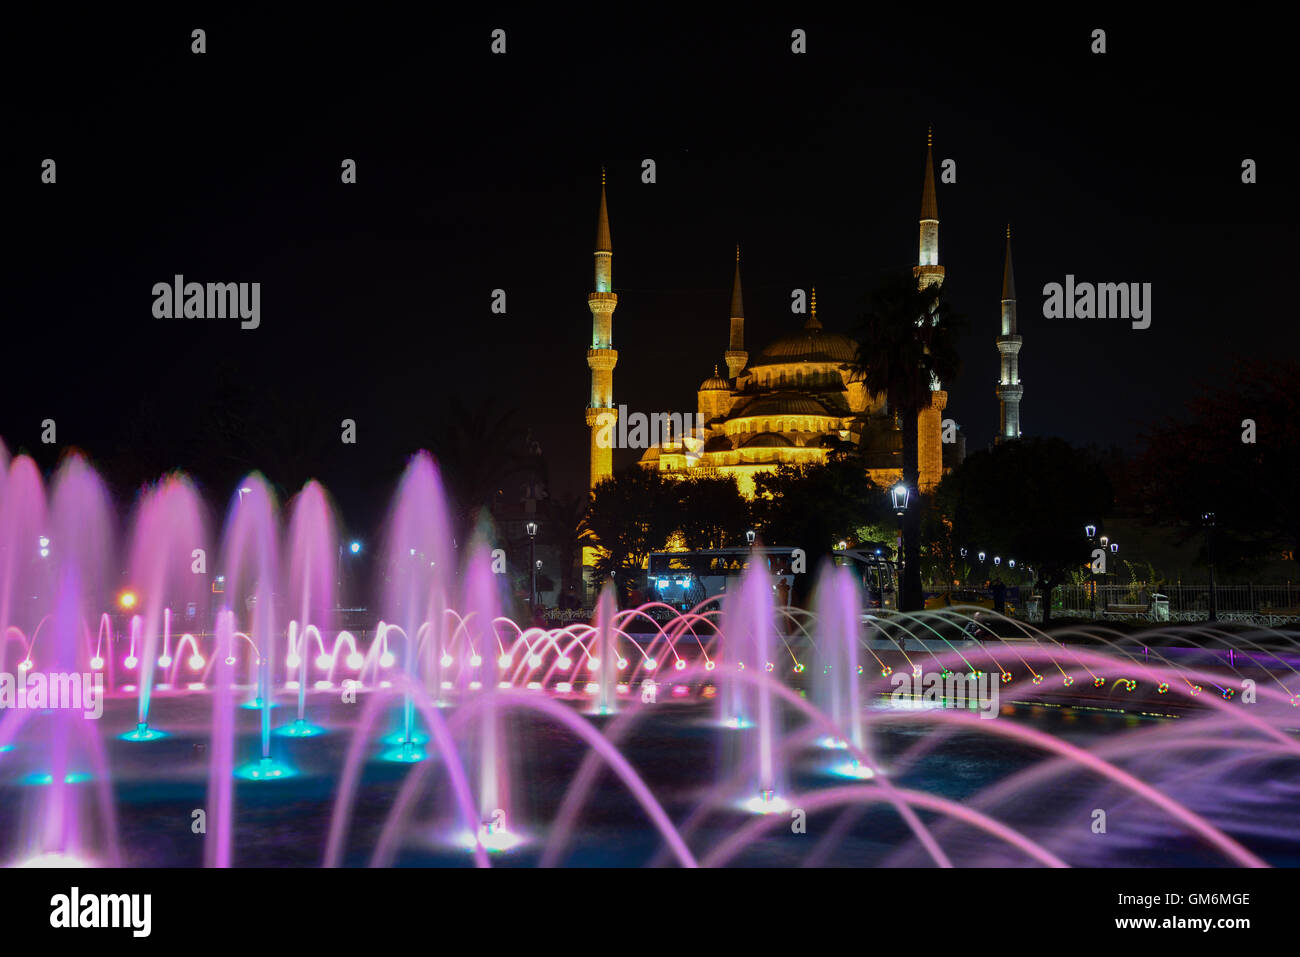 Sultan Ahmed Mosque is a historic mosque located in Istanbul, Turkey. - Stock Image